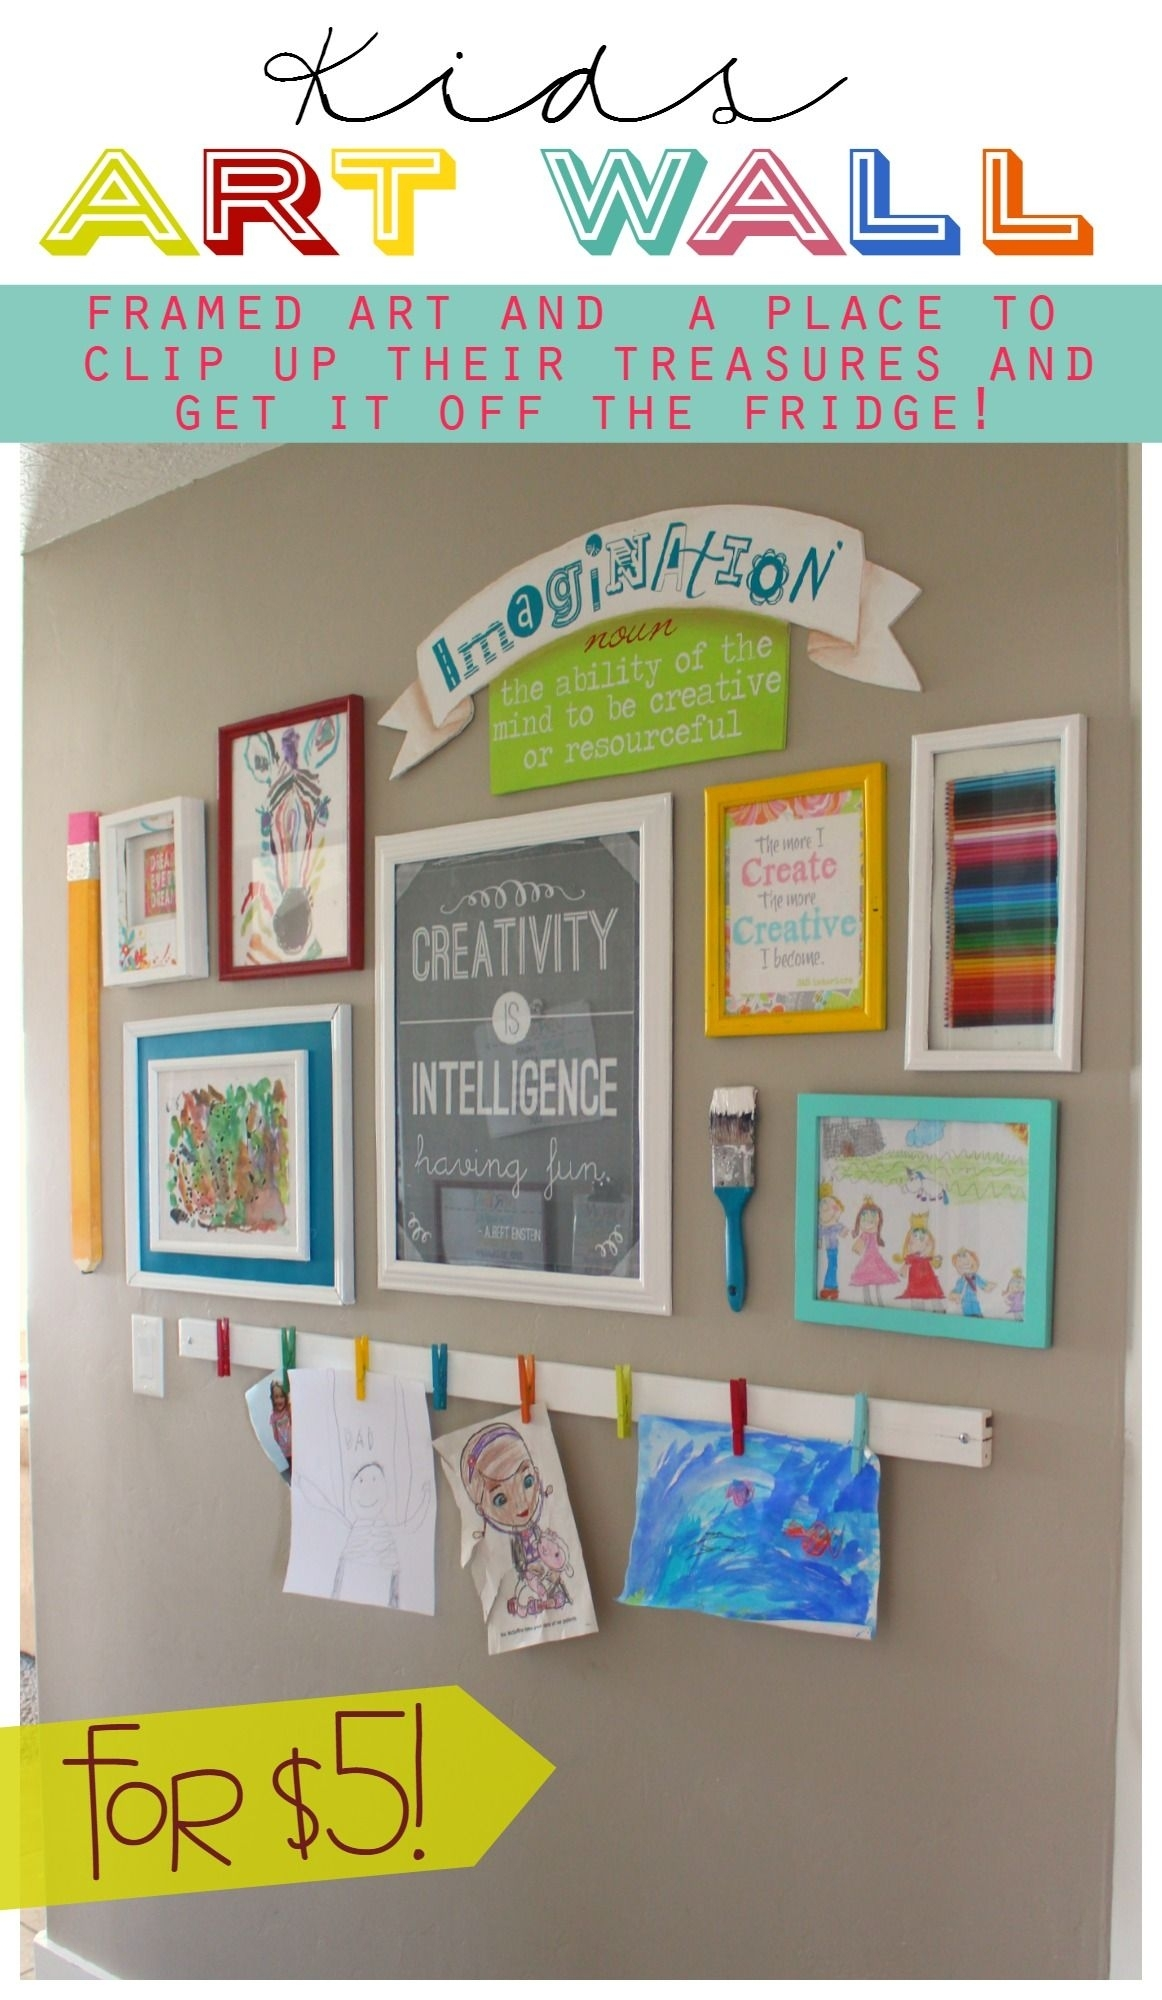 The Evolution Of An Art Wall | Crafts And Creativity | Pinterest For Best And Newest Kids Wall Art (Gallery 10 of 15)